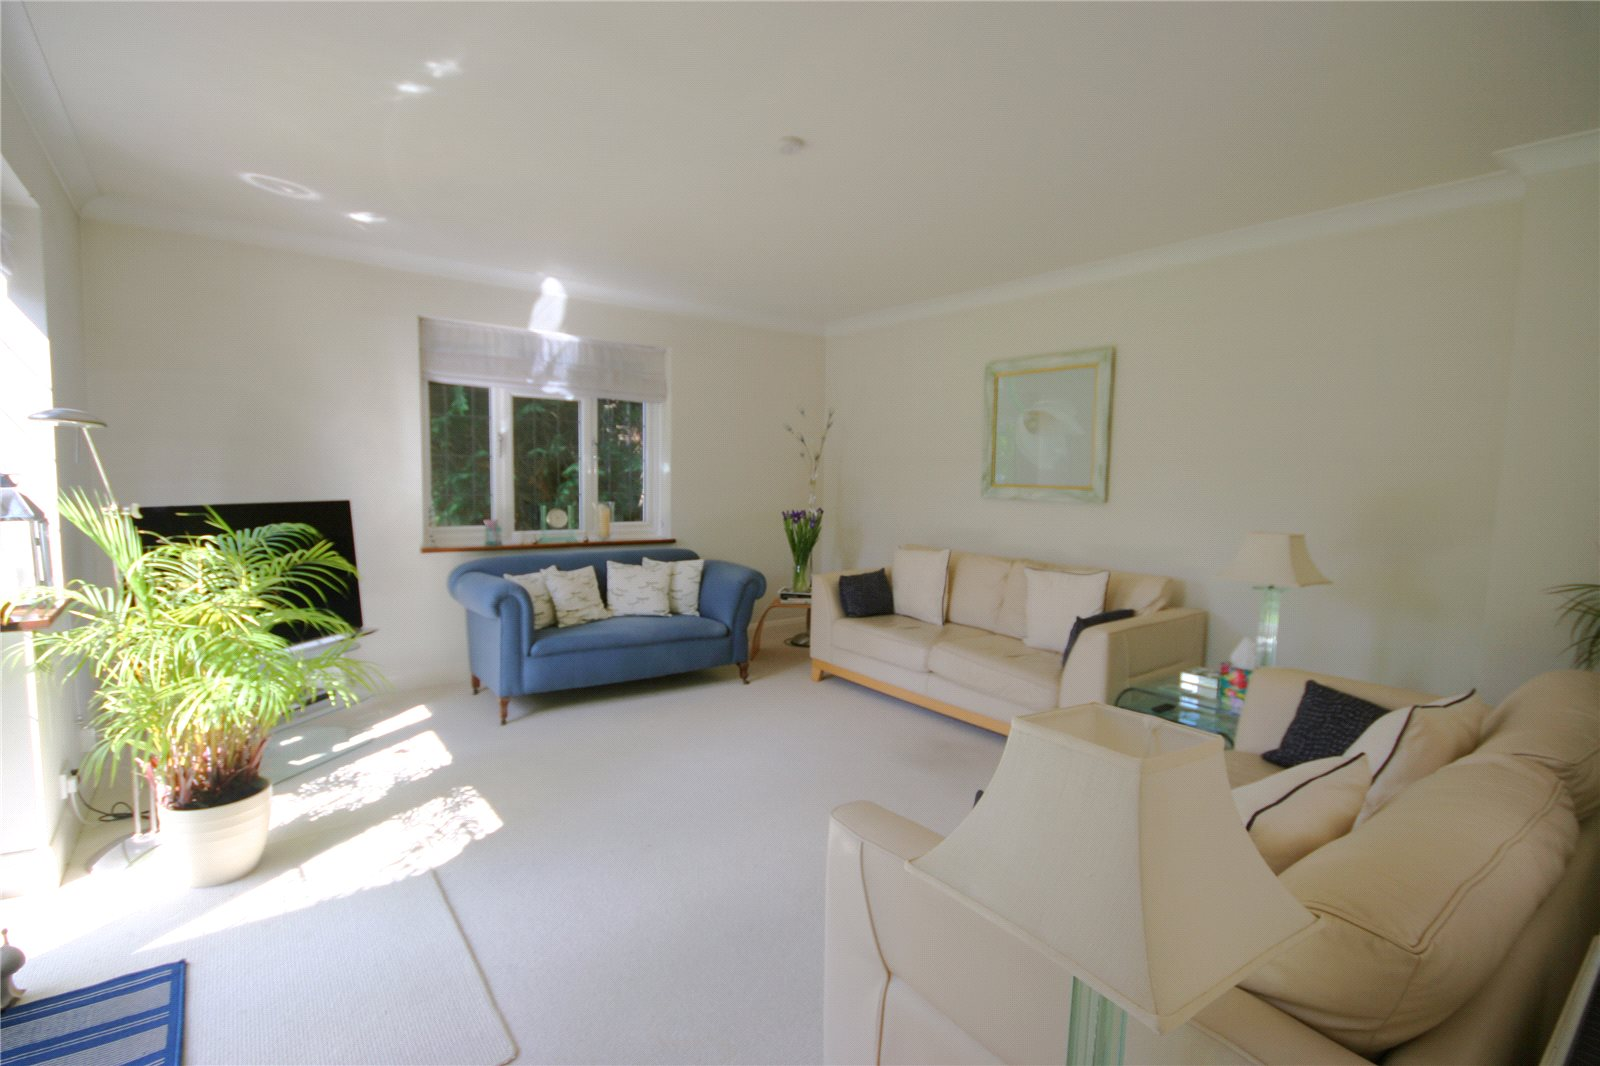 Additional photo for property listing at Denham Lane, Chalfont St Peter, Gerrards Cross, Buckinghamshire, SL9 Gerrards Cross, Angleterre